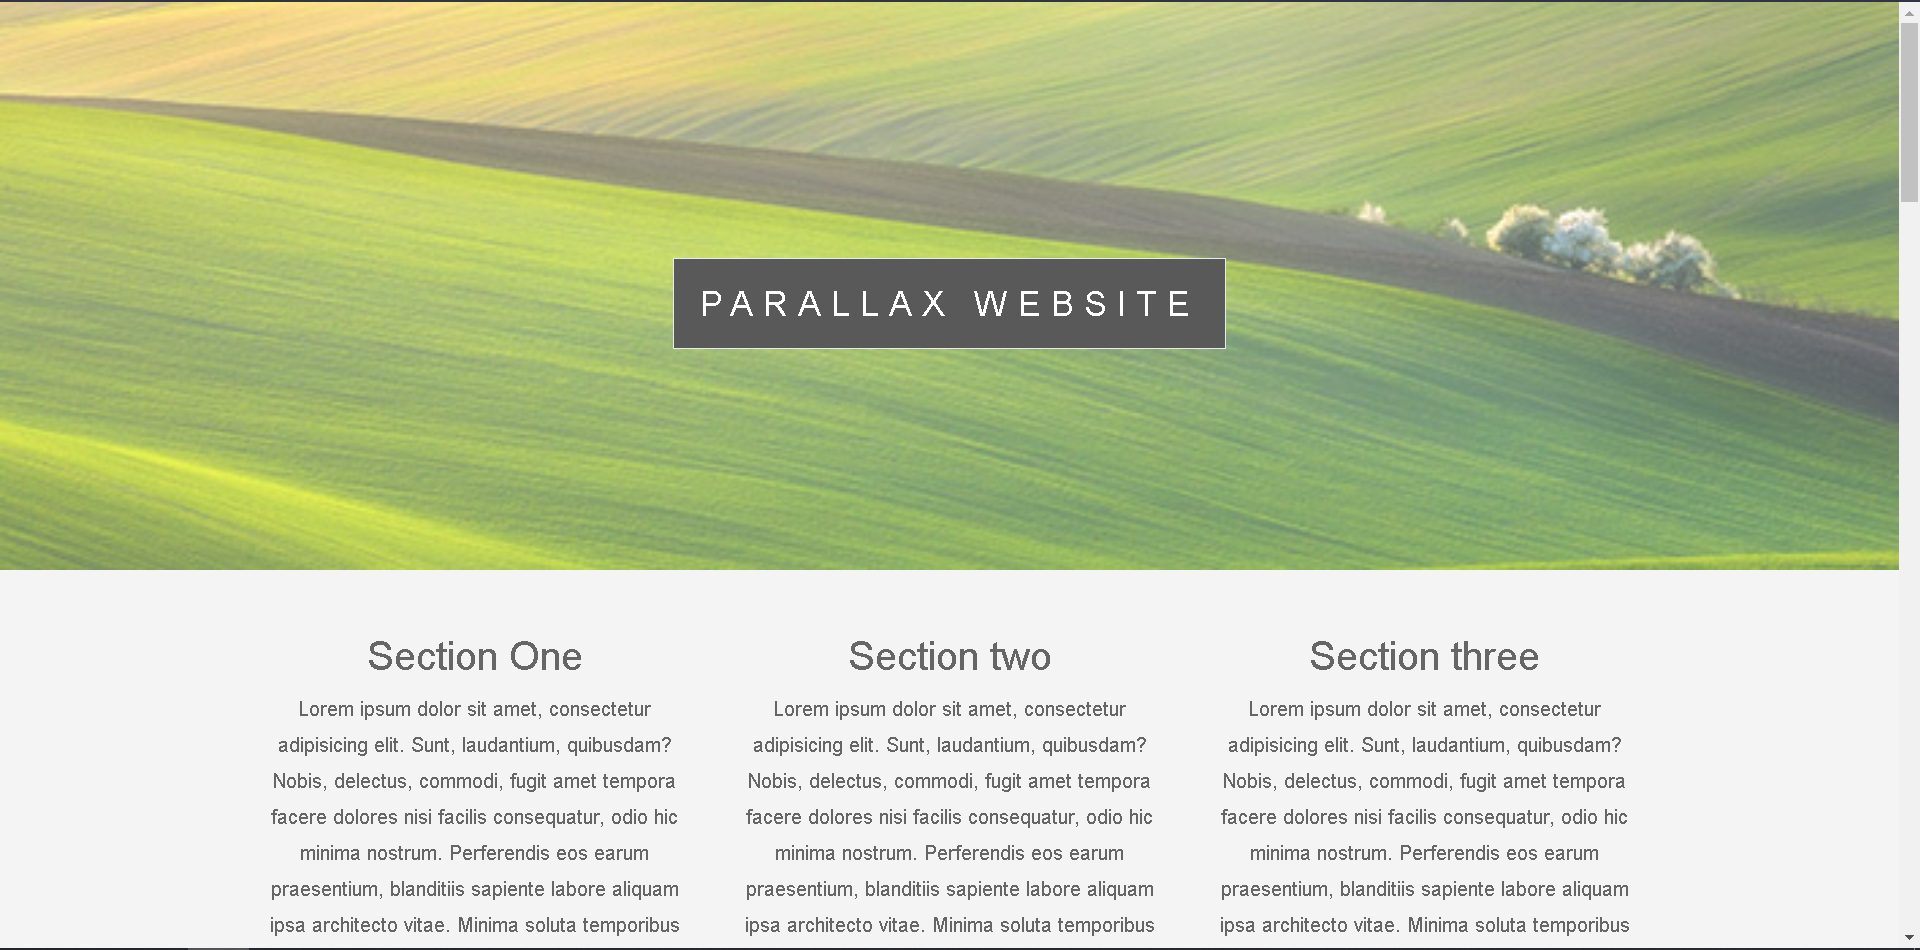 One page location of parallax website